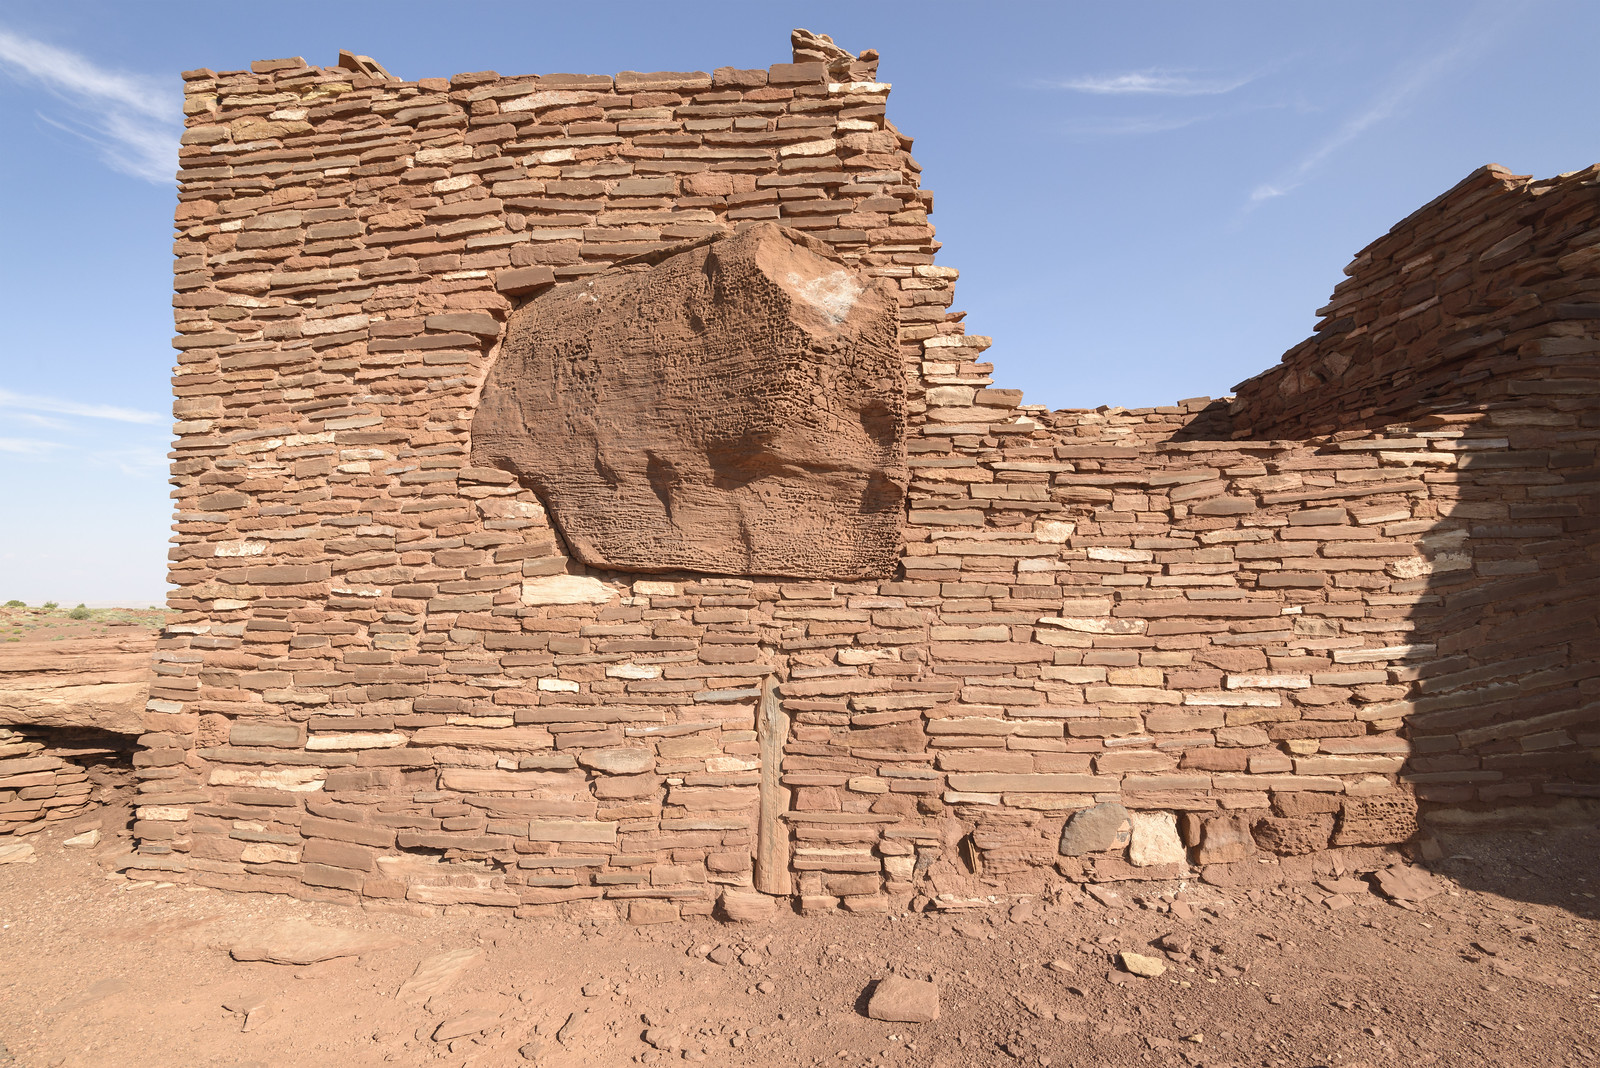 West Wall of the Wupatki Ruin | by GC_Dean